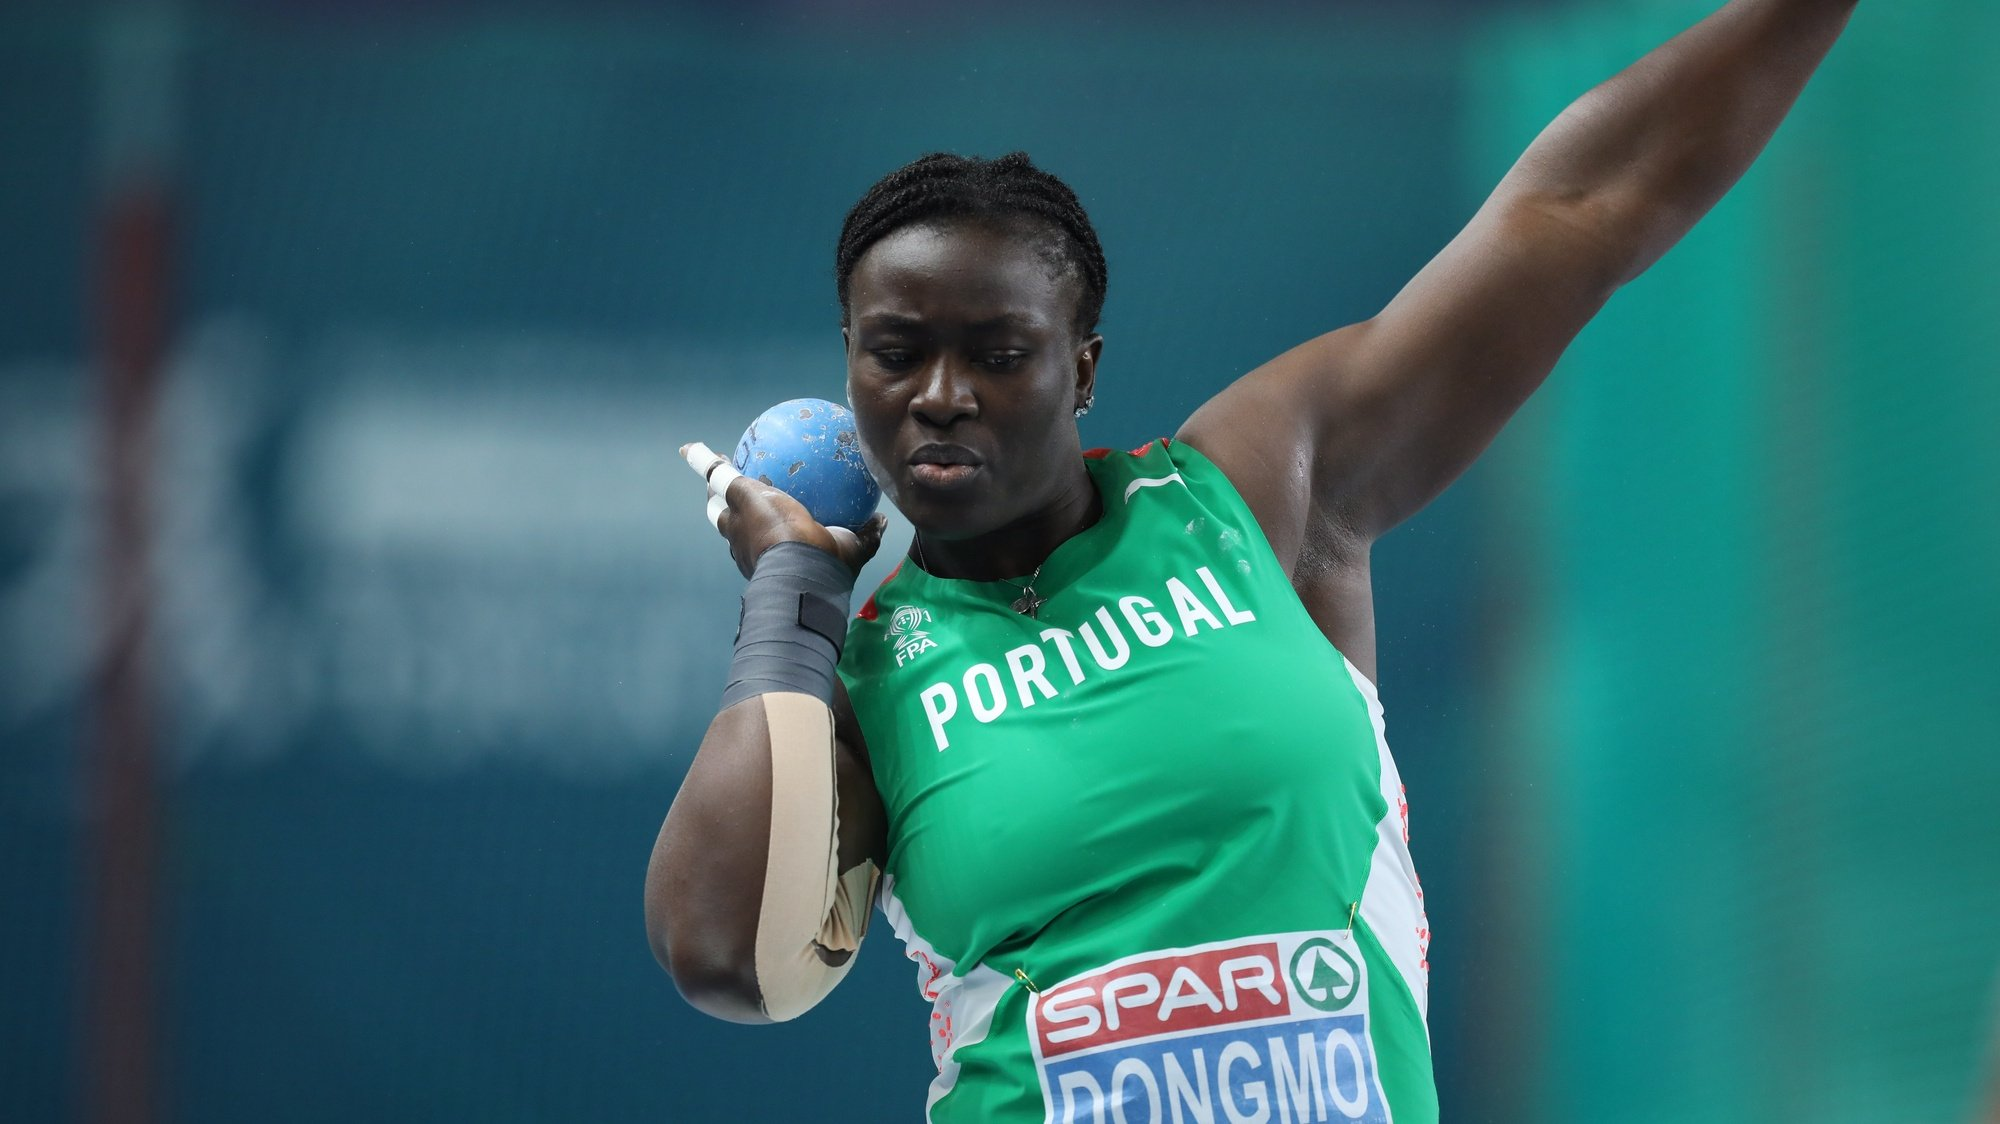 epa09054668 Auriol Dongmo of Portugal competes in the women's Shot Put final at the 36th European Athletics Indoor Championships at the Arena Torun, in Torun, north-central Poland, 05 March 2021.  EPA/Leszek Szymanski POLAND OUT